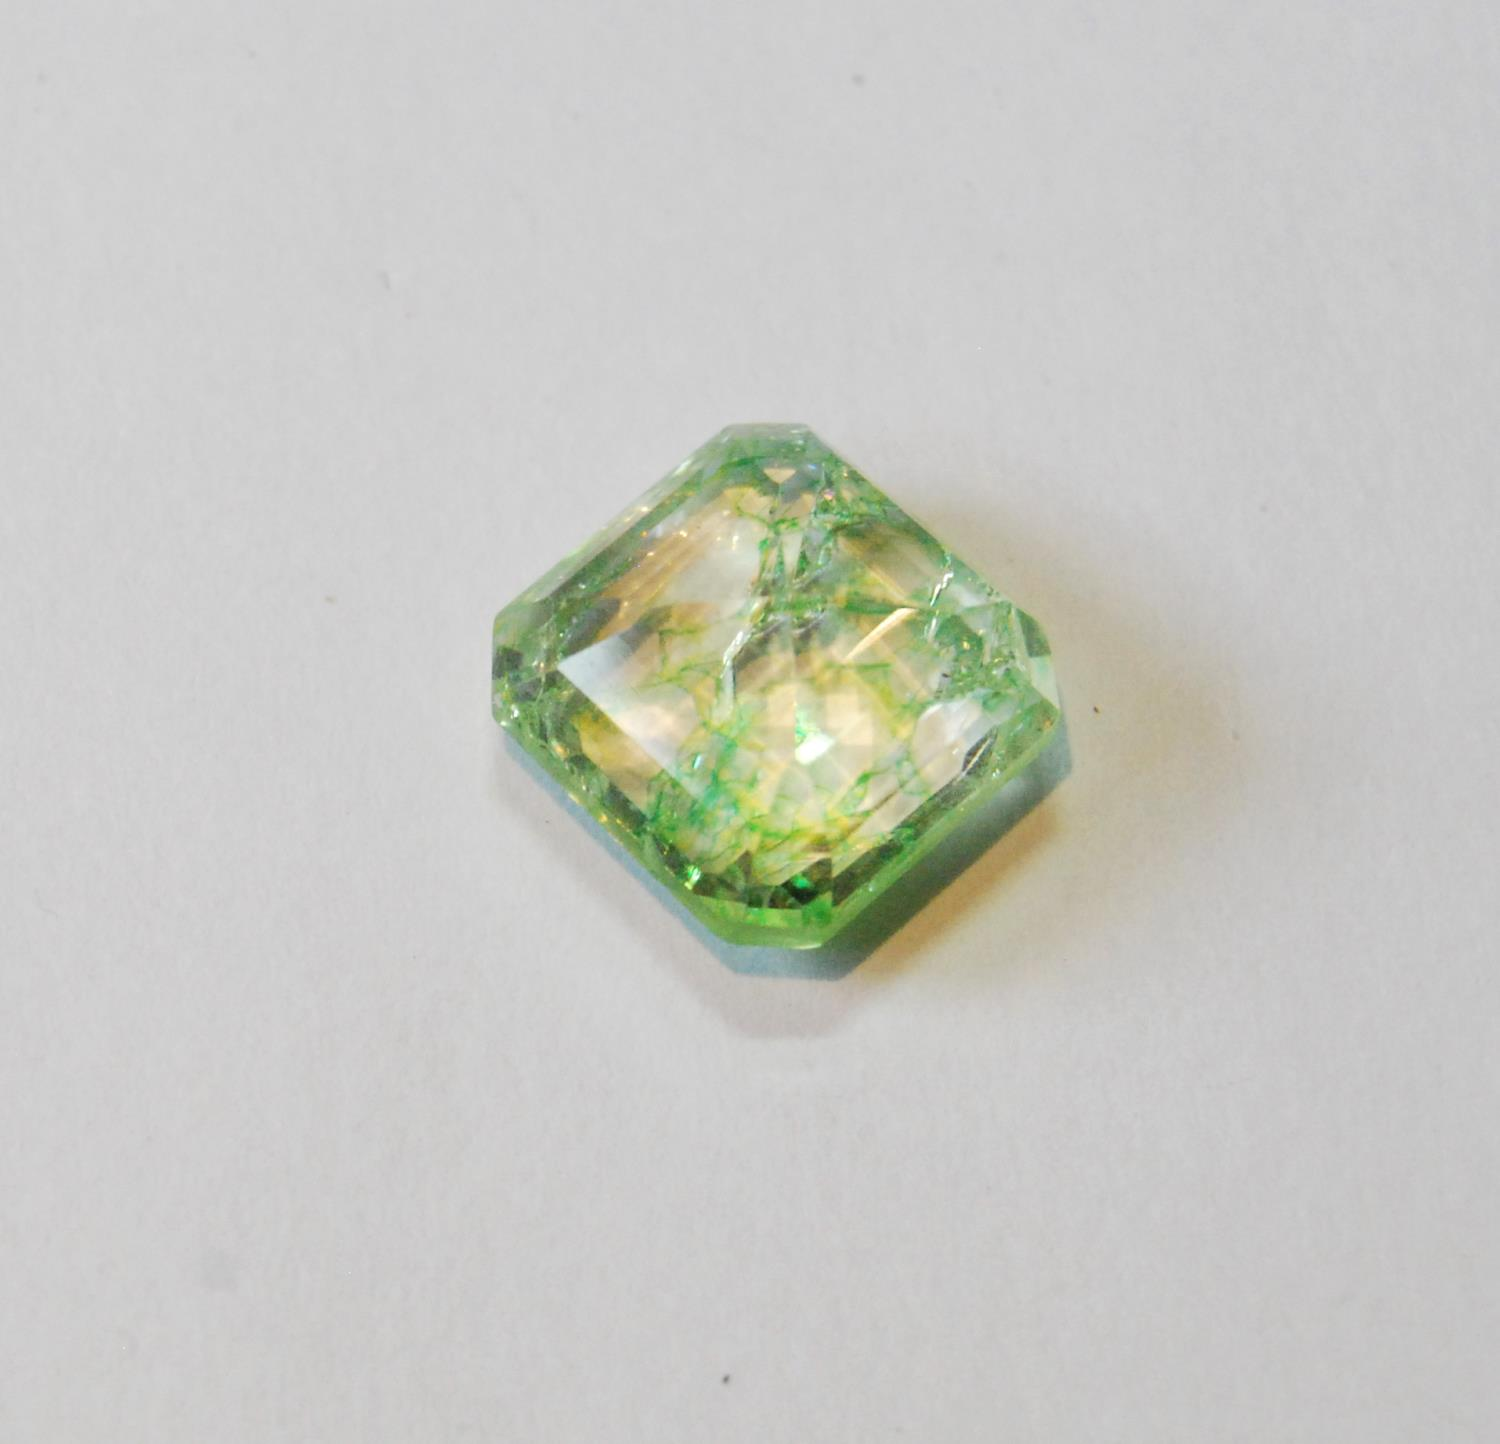 Unmounted square emerald with NGL report, given as 8.65ct, 12.24mm x 7.26mm, treated, of almost lime - Image 4 of 5